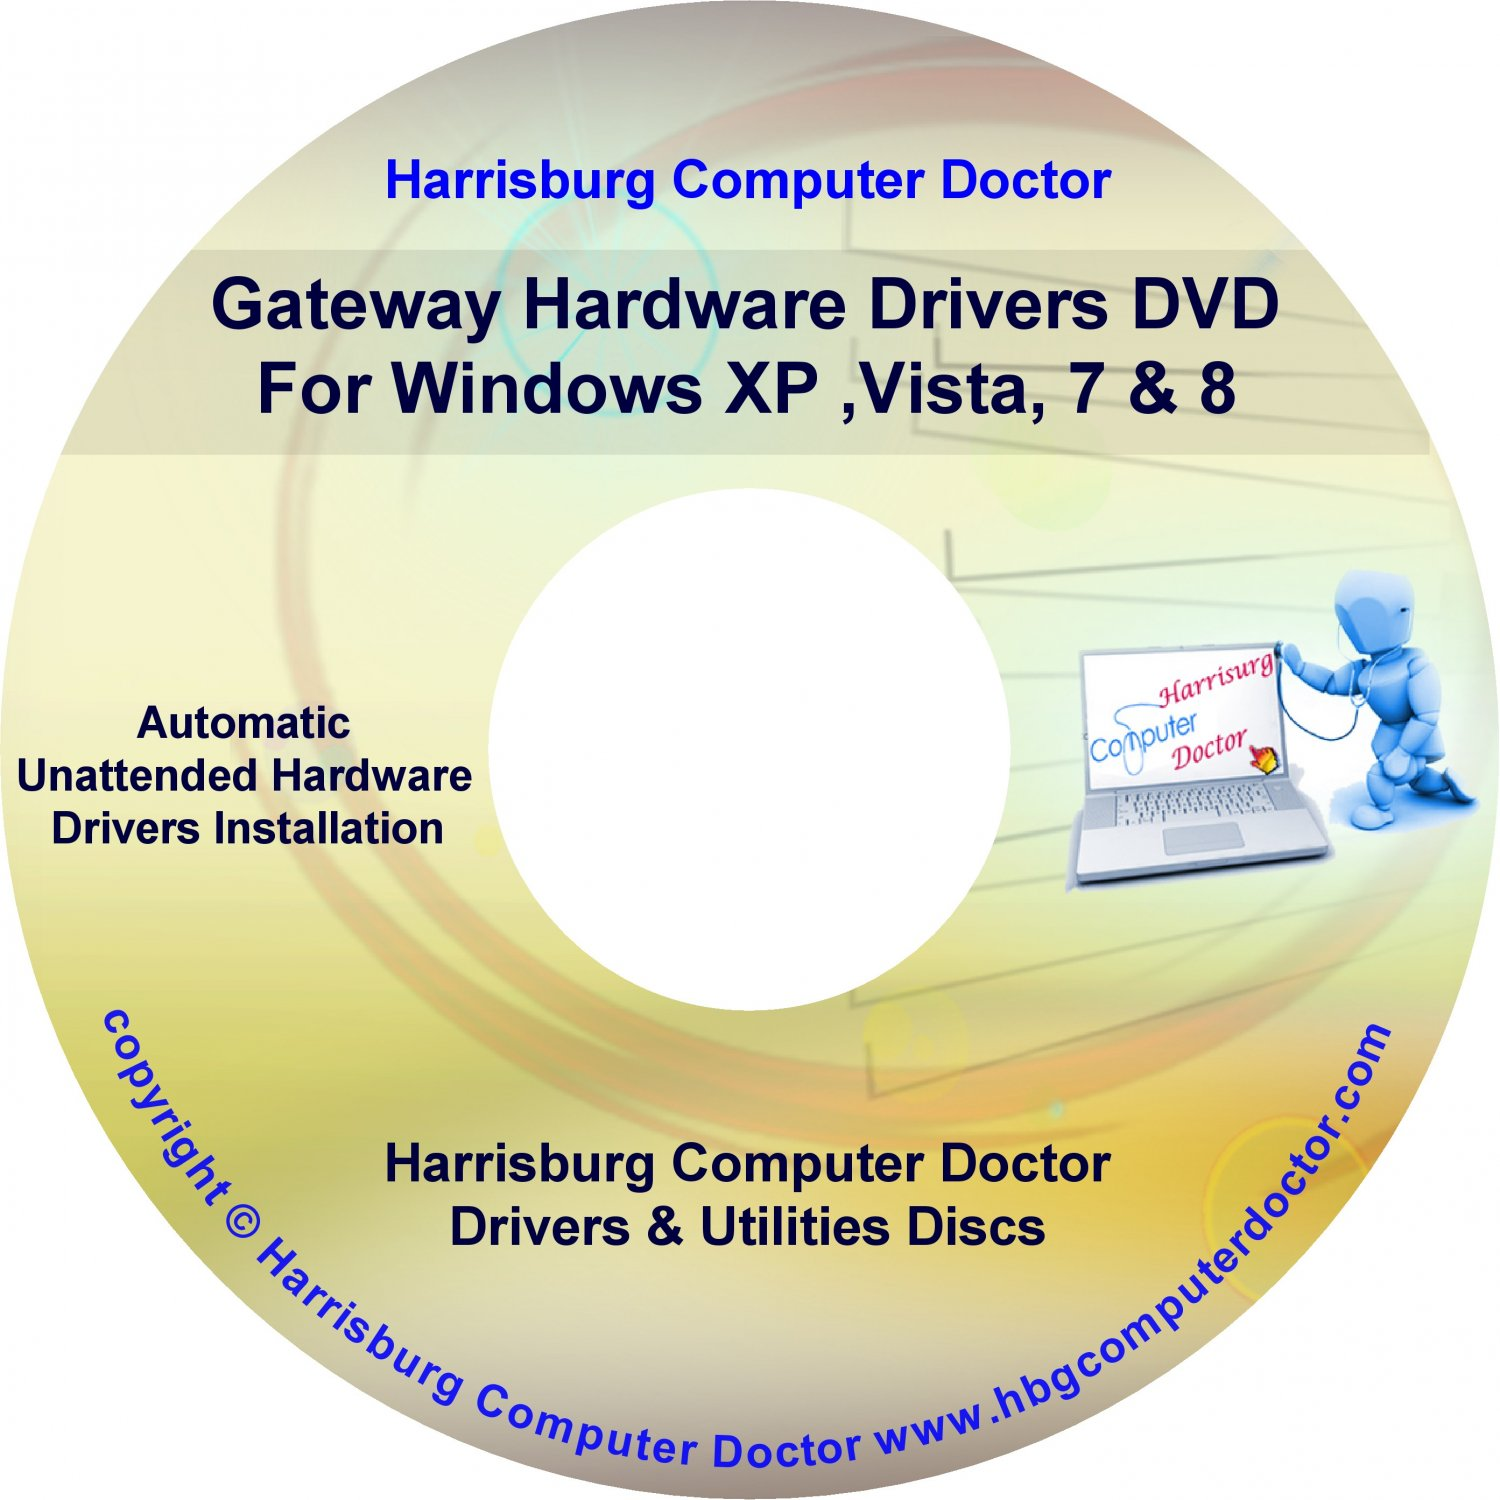 Gateway GT5477E Drivers DVD For Windows, XP, Vista, 7 & 8